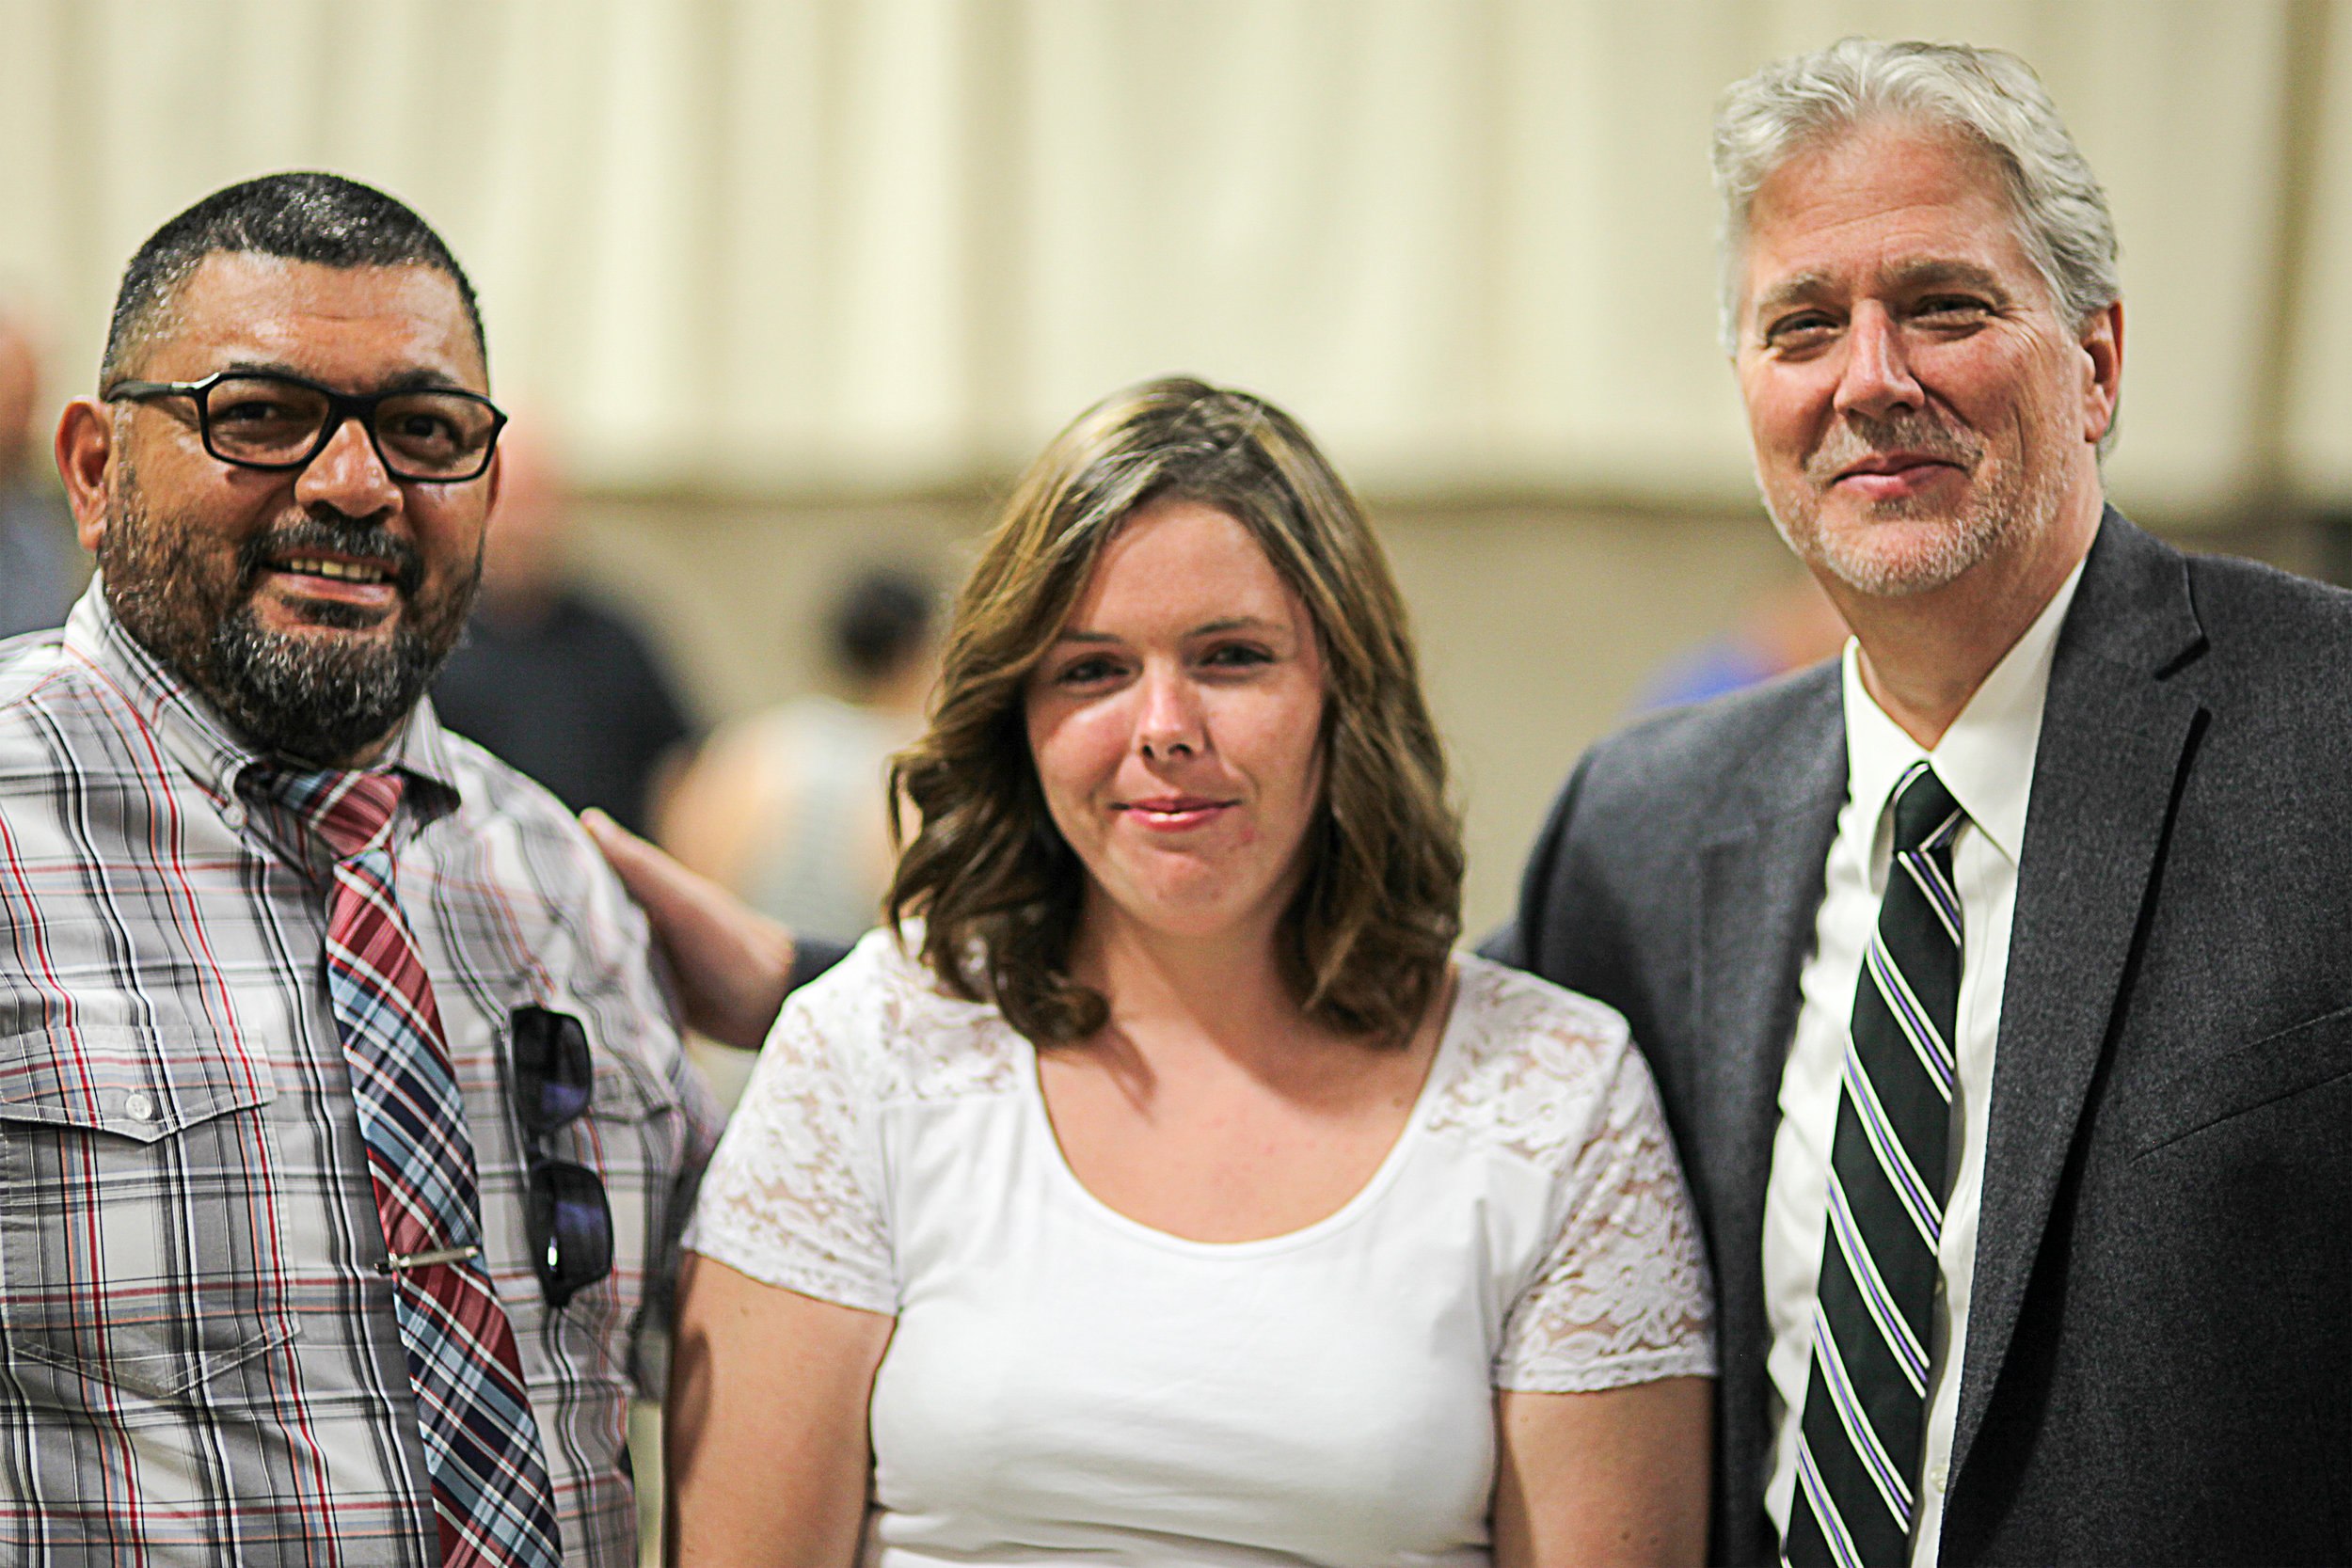 Probation Officer Gene Fernandez (L) and Judge Gary Johnson (R) attended our Life Change Academy graduation in September to celebrate Lanessa